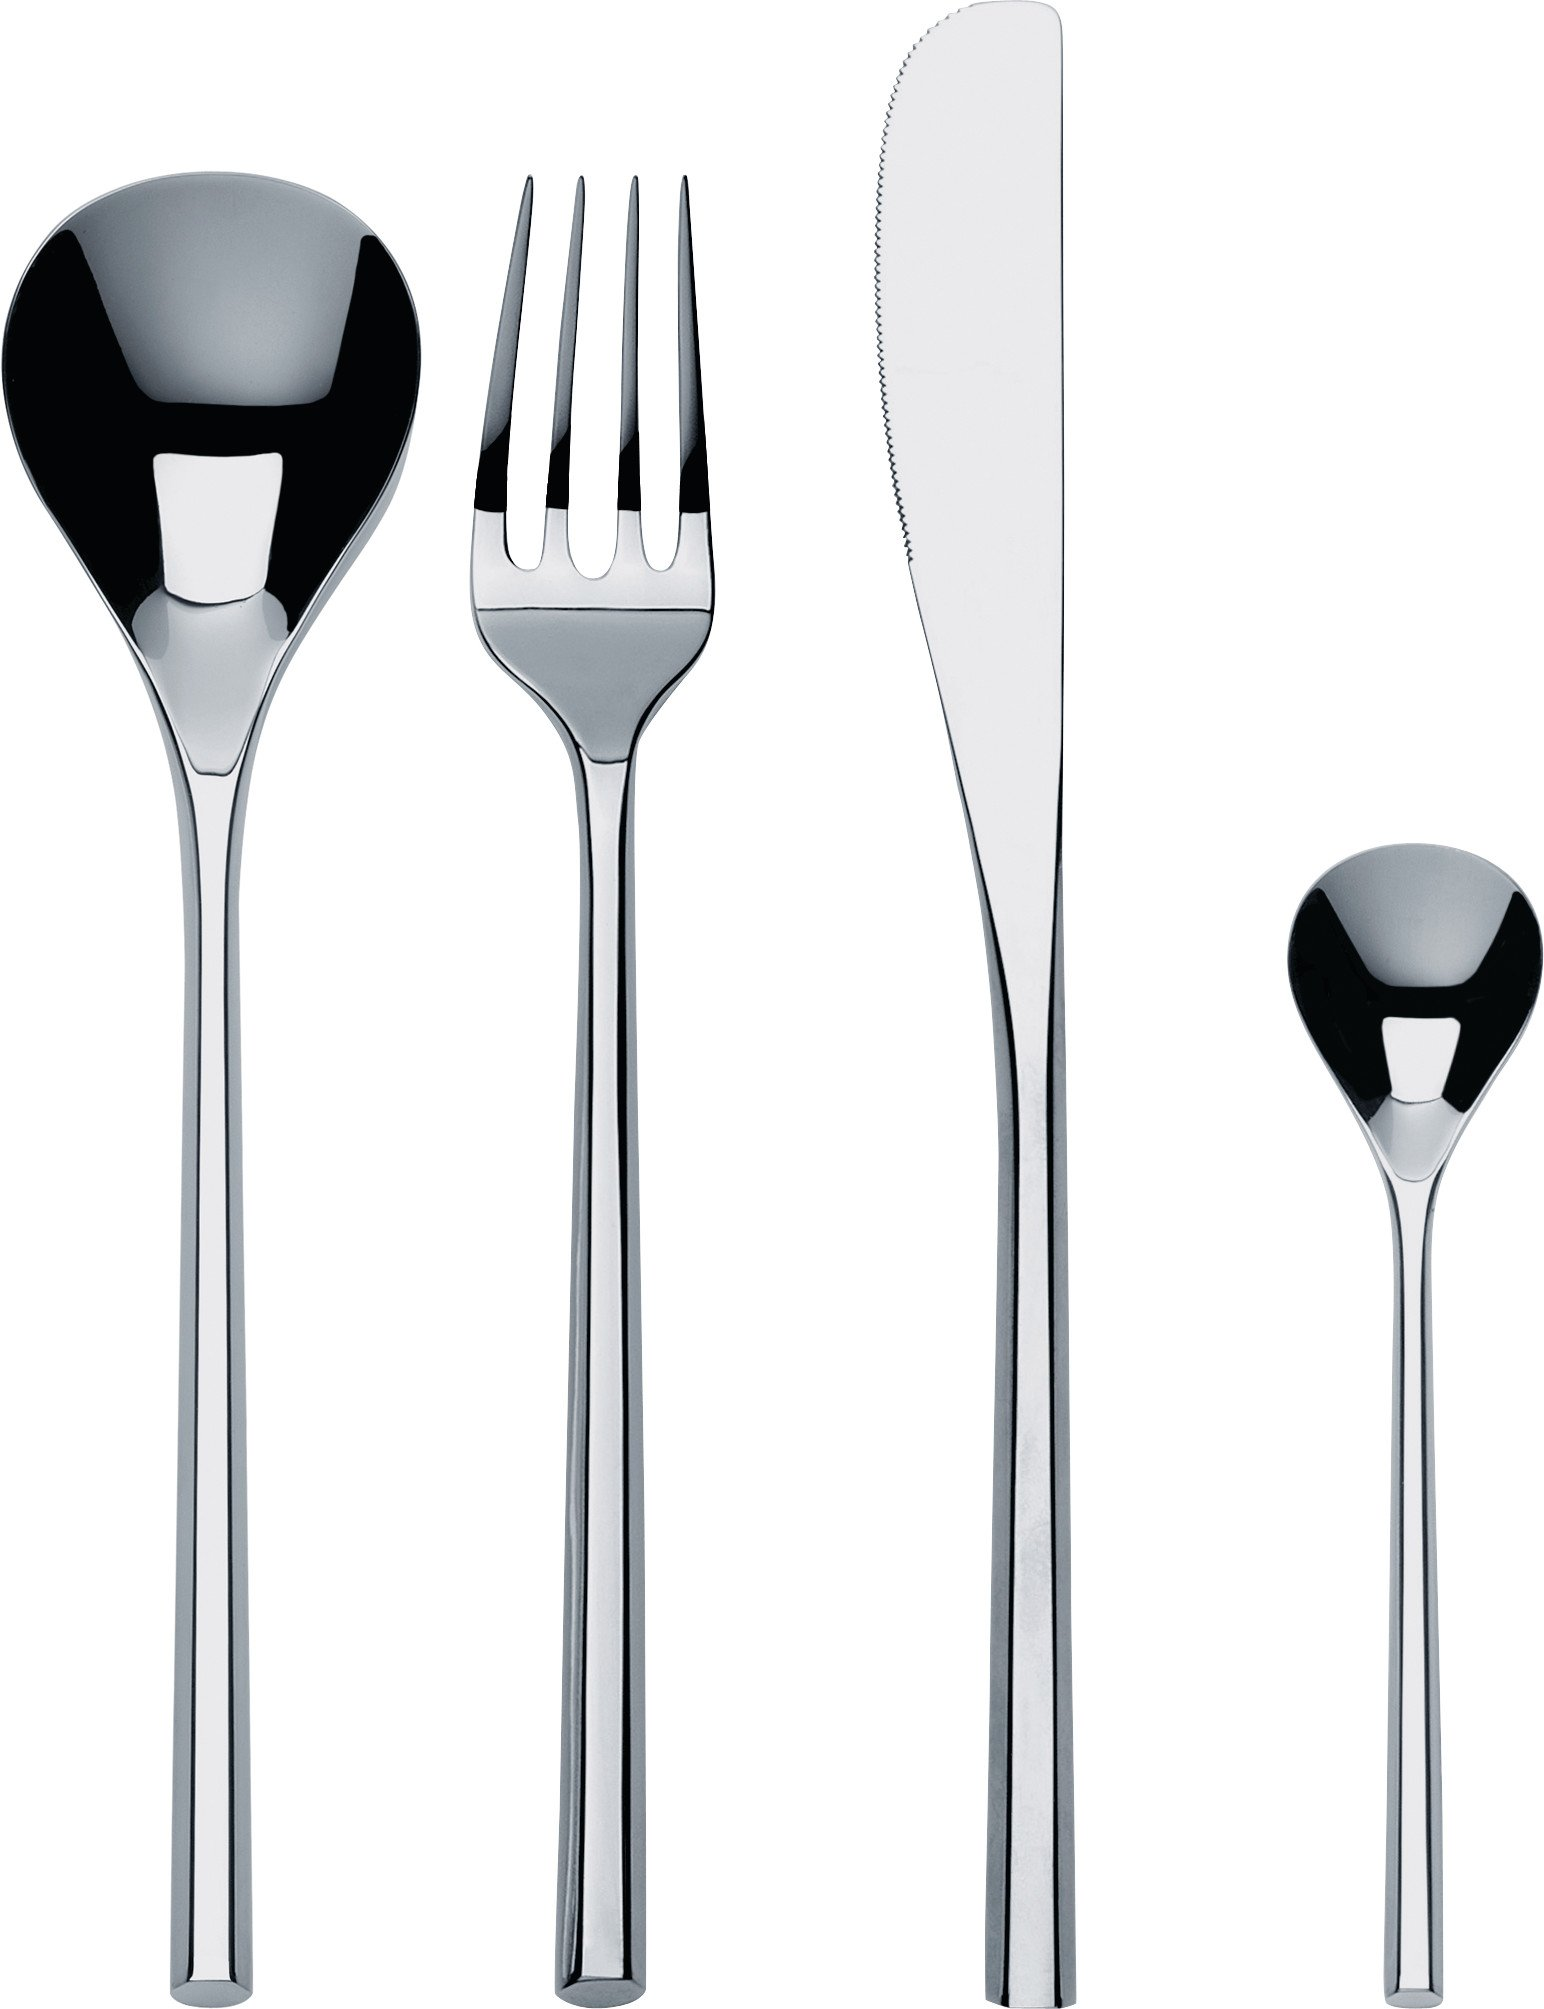 """Alessi""""MU"""" Flatware Set Composed Of Six Table Spoons, Table Forks, Table Knives, Coffee Spoons in 18/10 Stainless Steel Mirror Polished, Silver"""